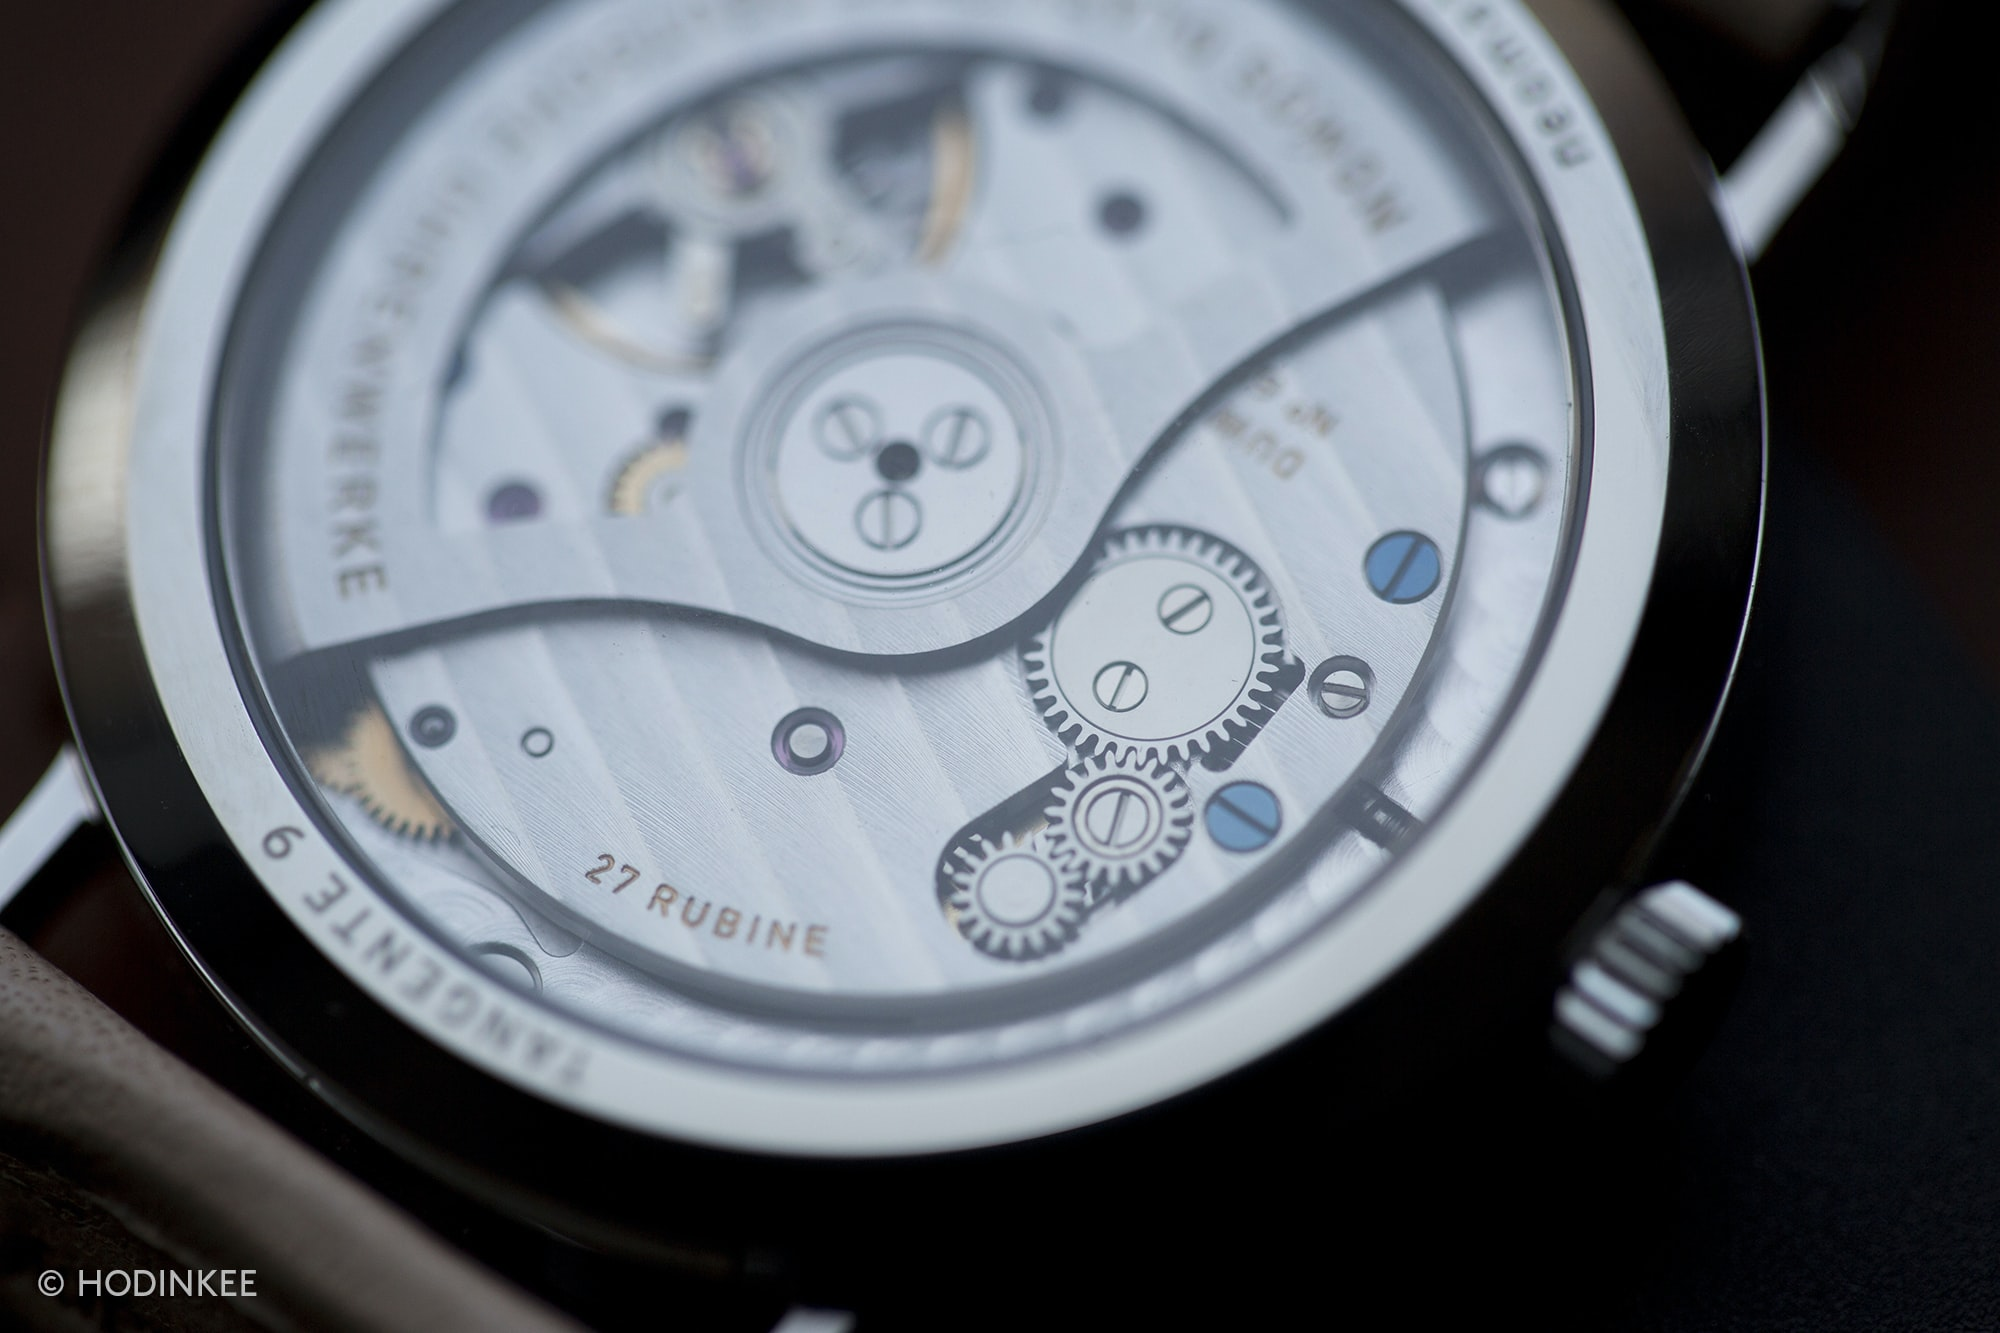 Inside The Manufacture: A Visit To NOMOS Glashütte, From Design To Production (VIDEO) Inside The Manufacture: A Visit To NOMOS Glashütte, From Design To Production (VIDEO) 588A9440 copy